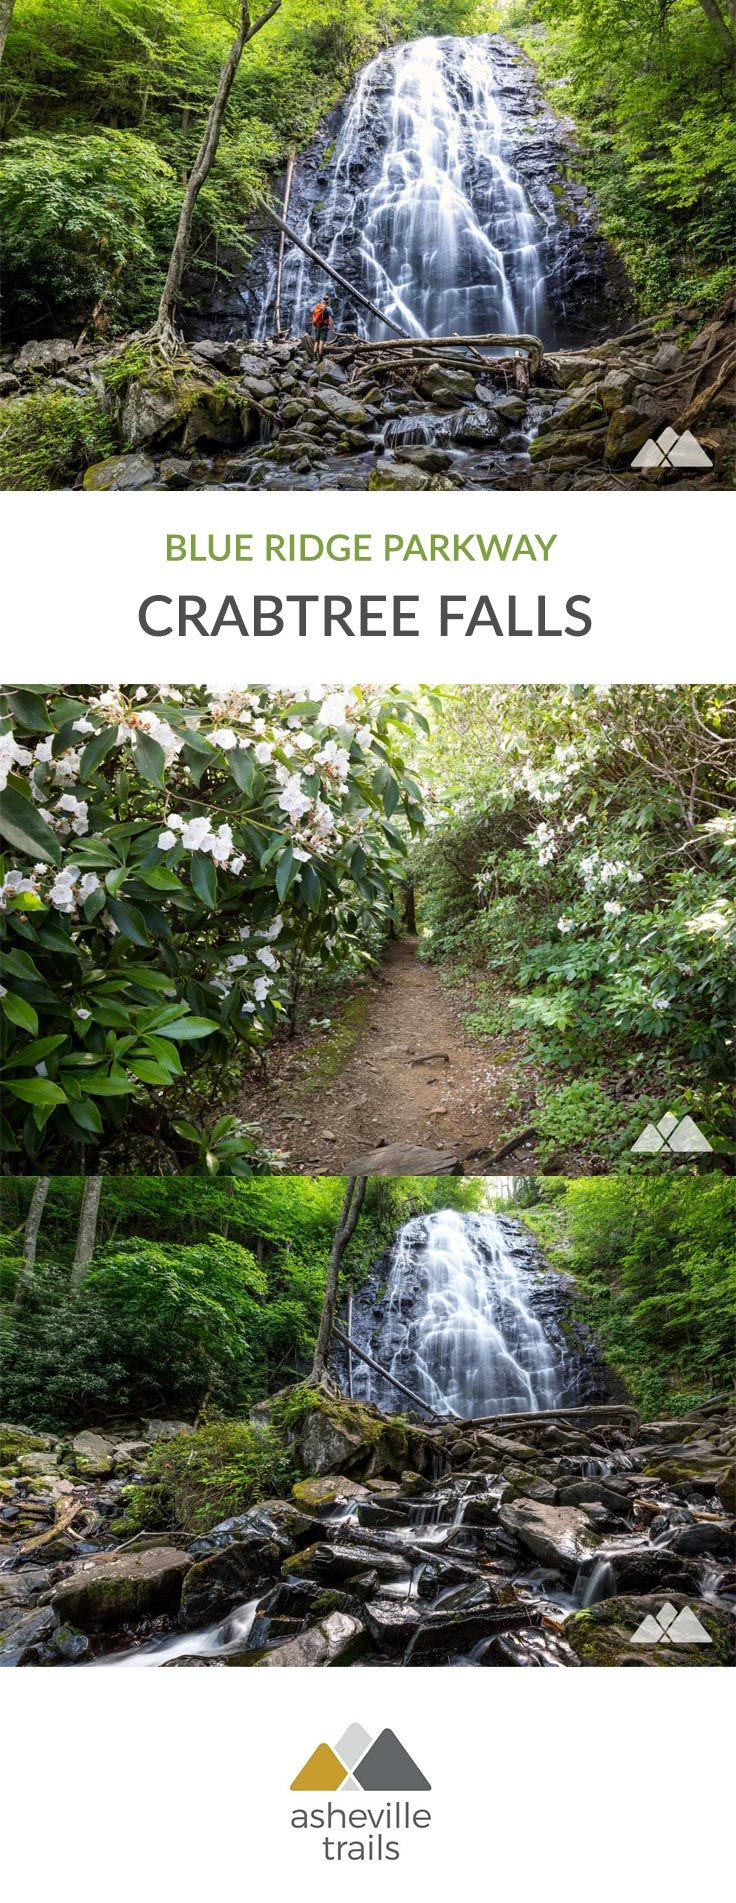 Crabtree Falls on the Blue Ridge Parkway - Asheville Trails